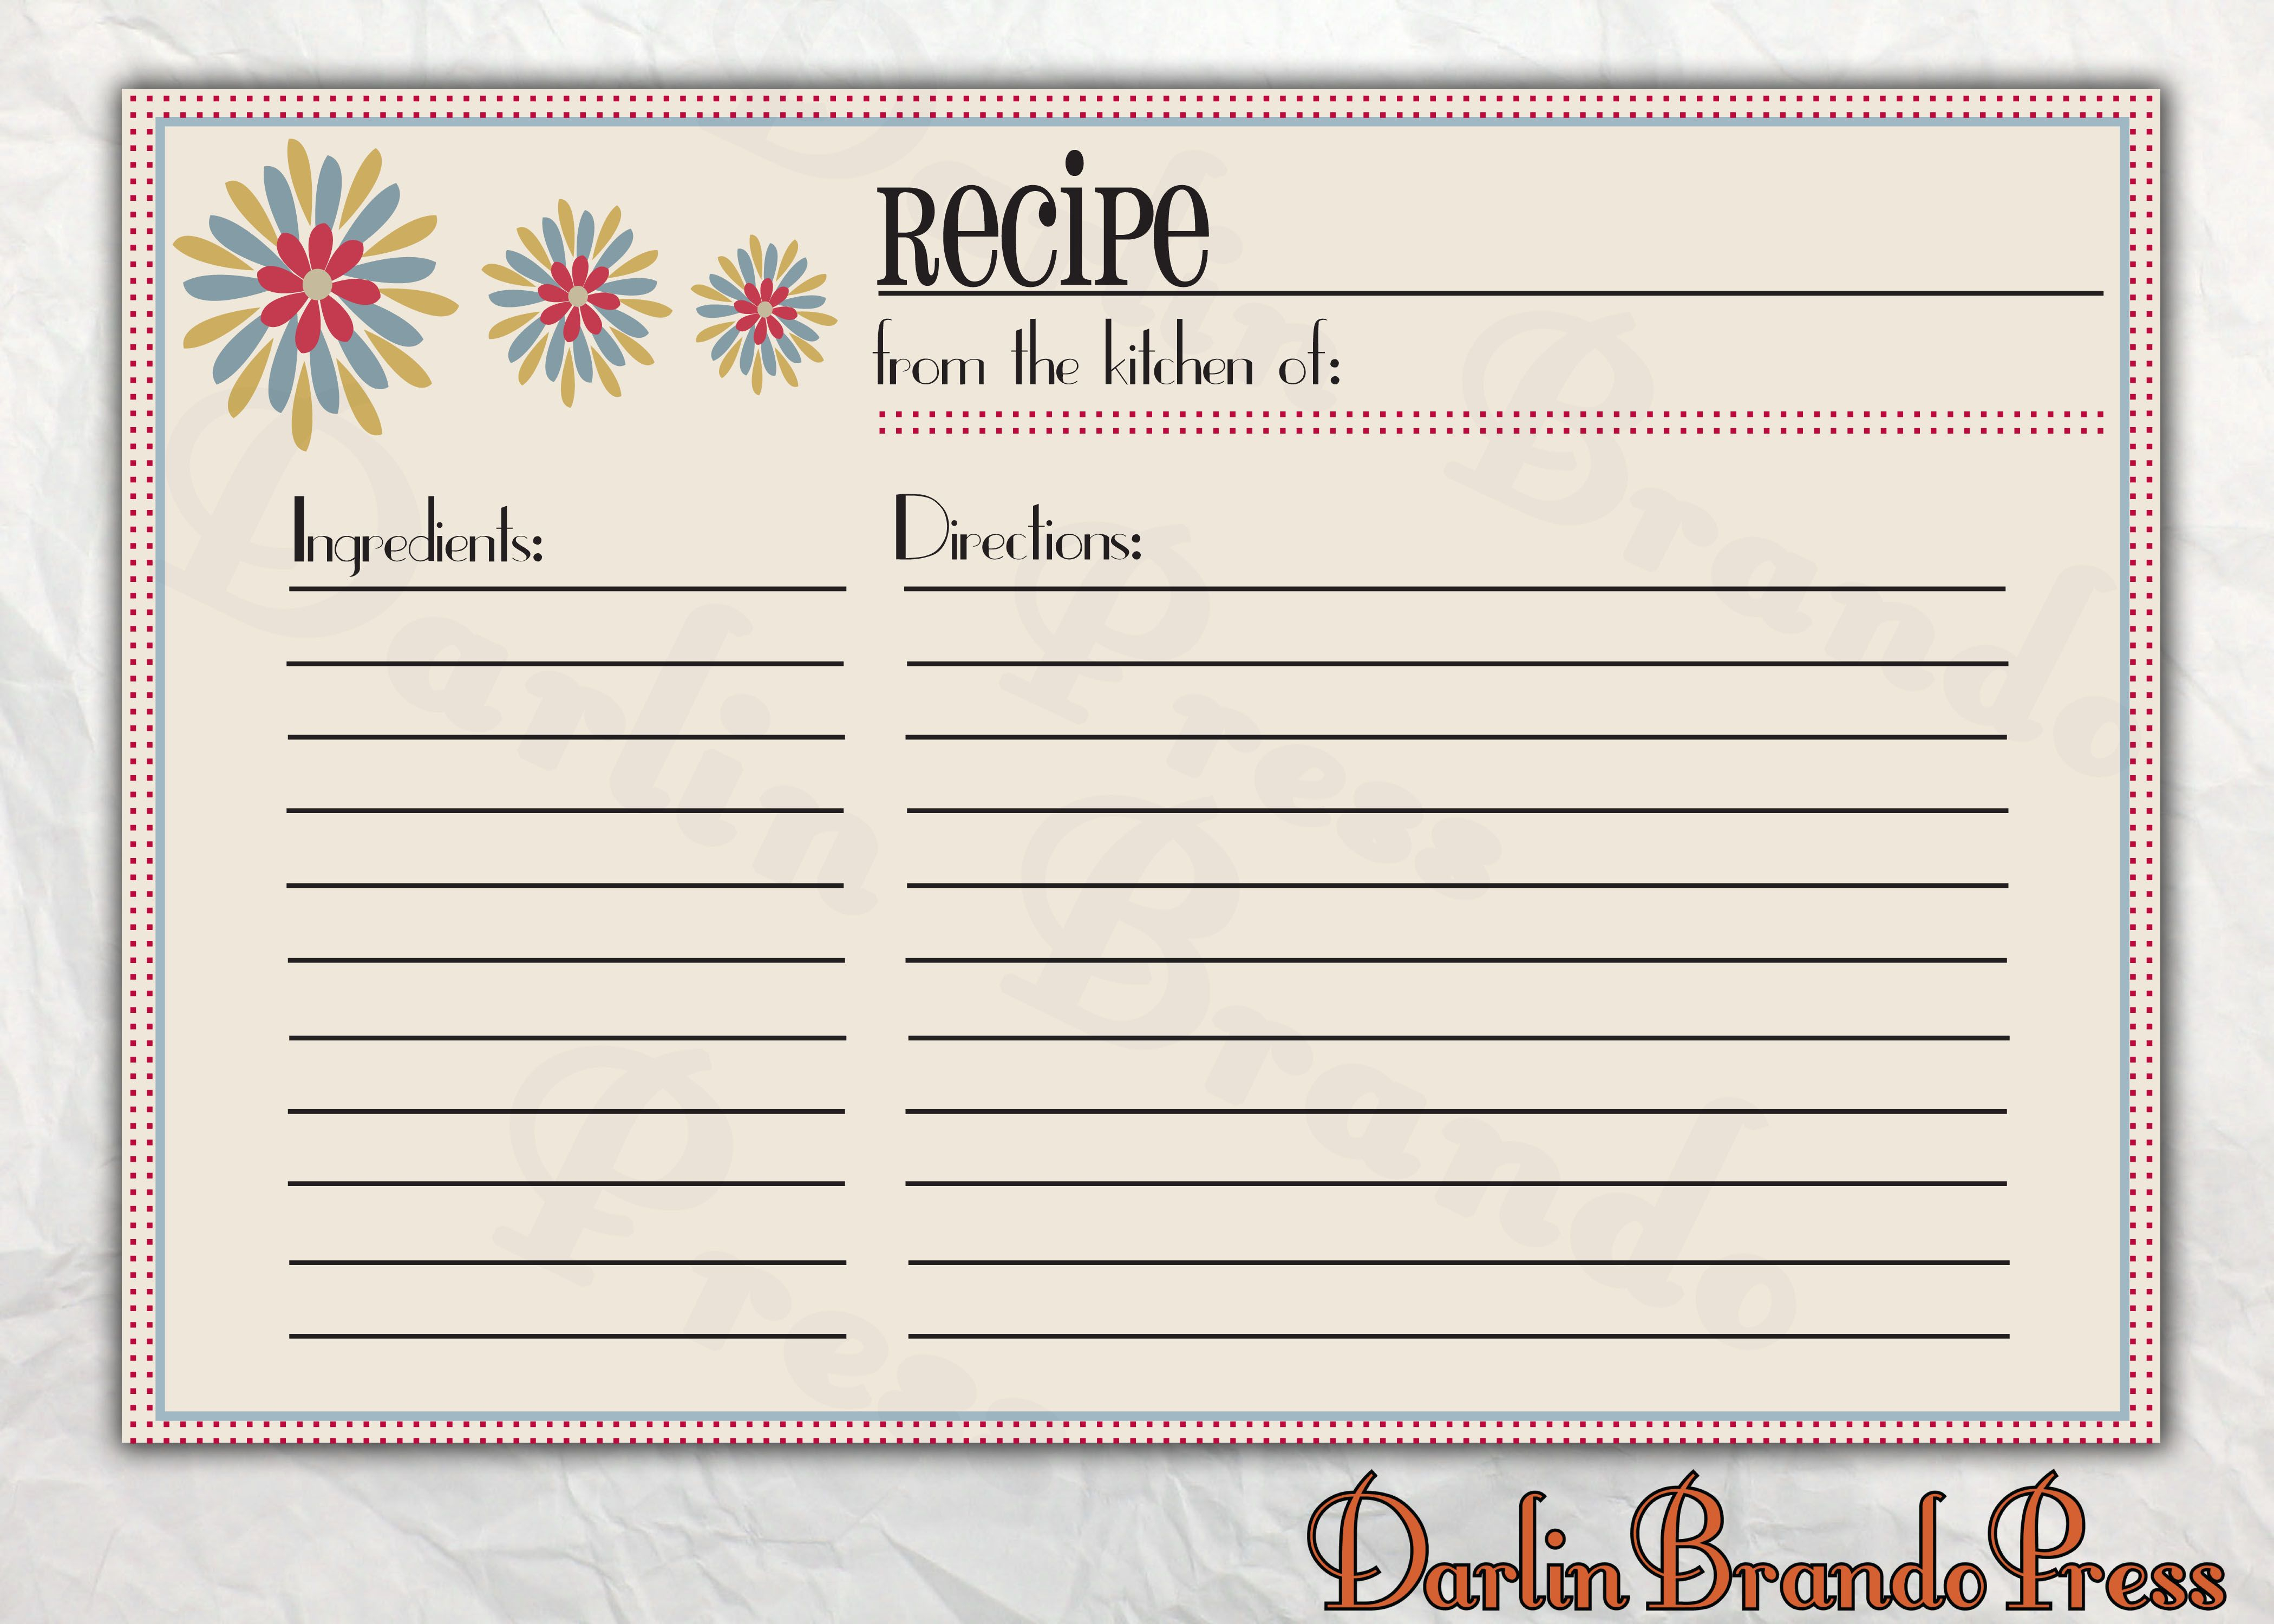 Recipes Card Templates Word   Cooking/baking   Printable For Free Recipe Card Templates For Microsoft Word